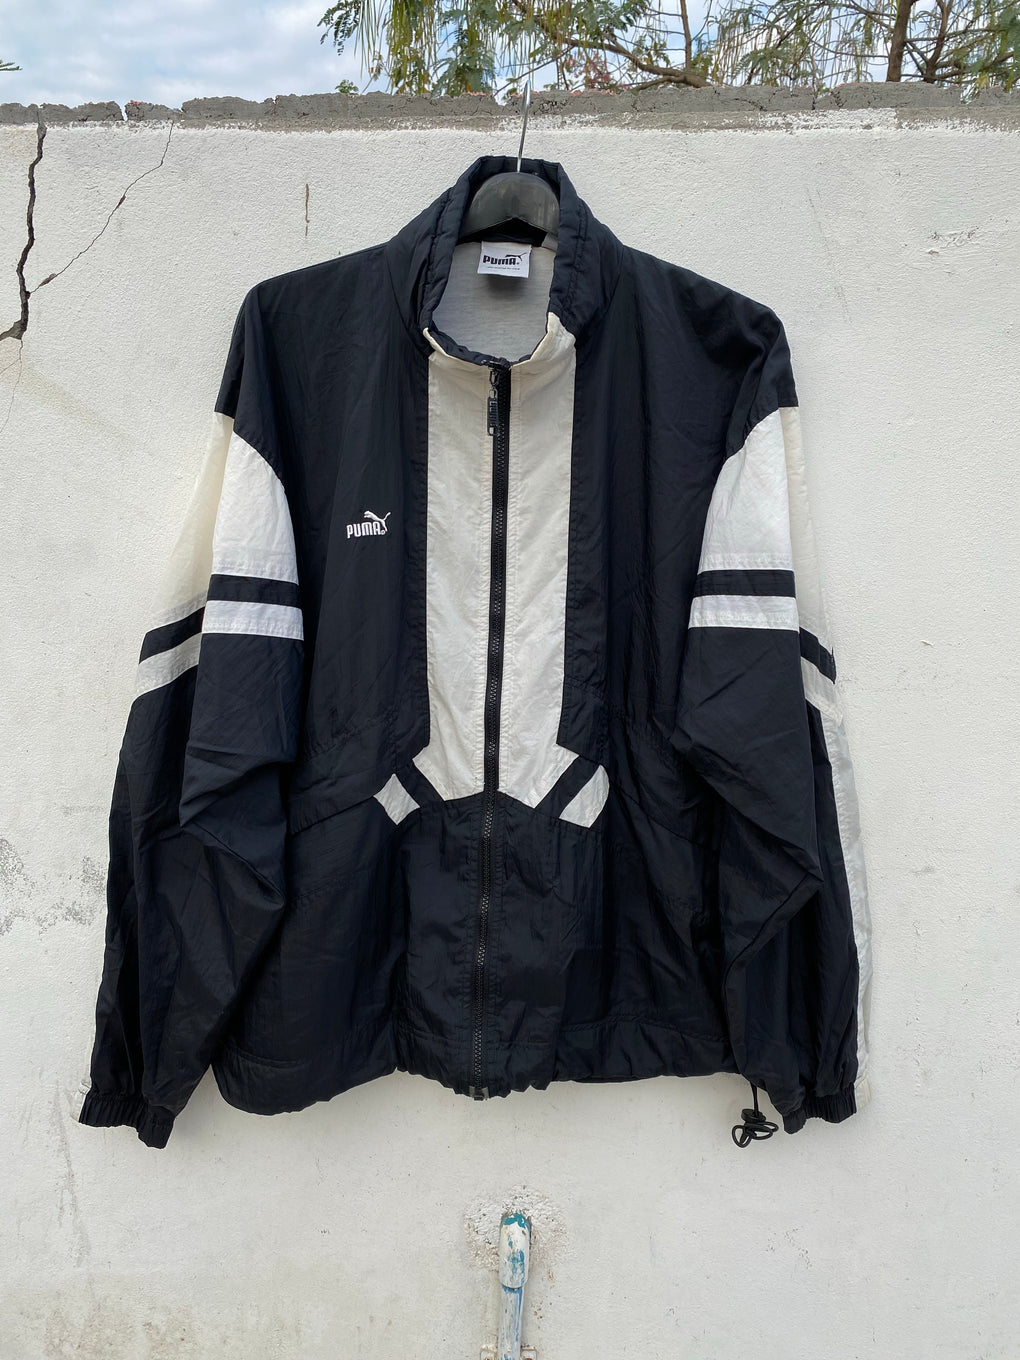 PUMA SPORTS JACKET - FROTHLYF